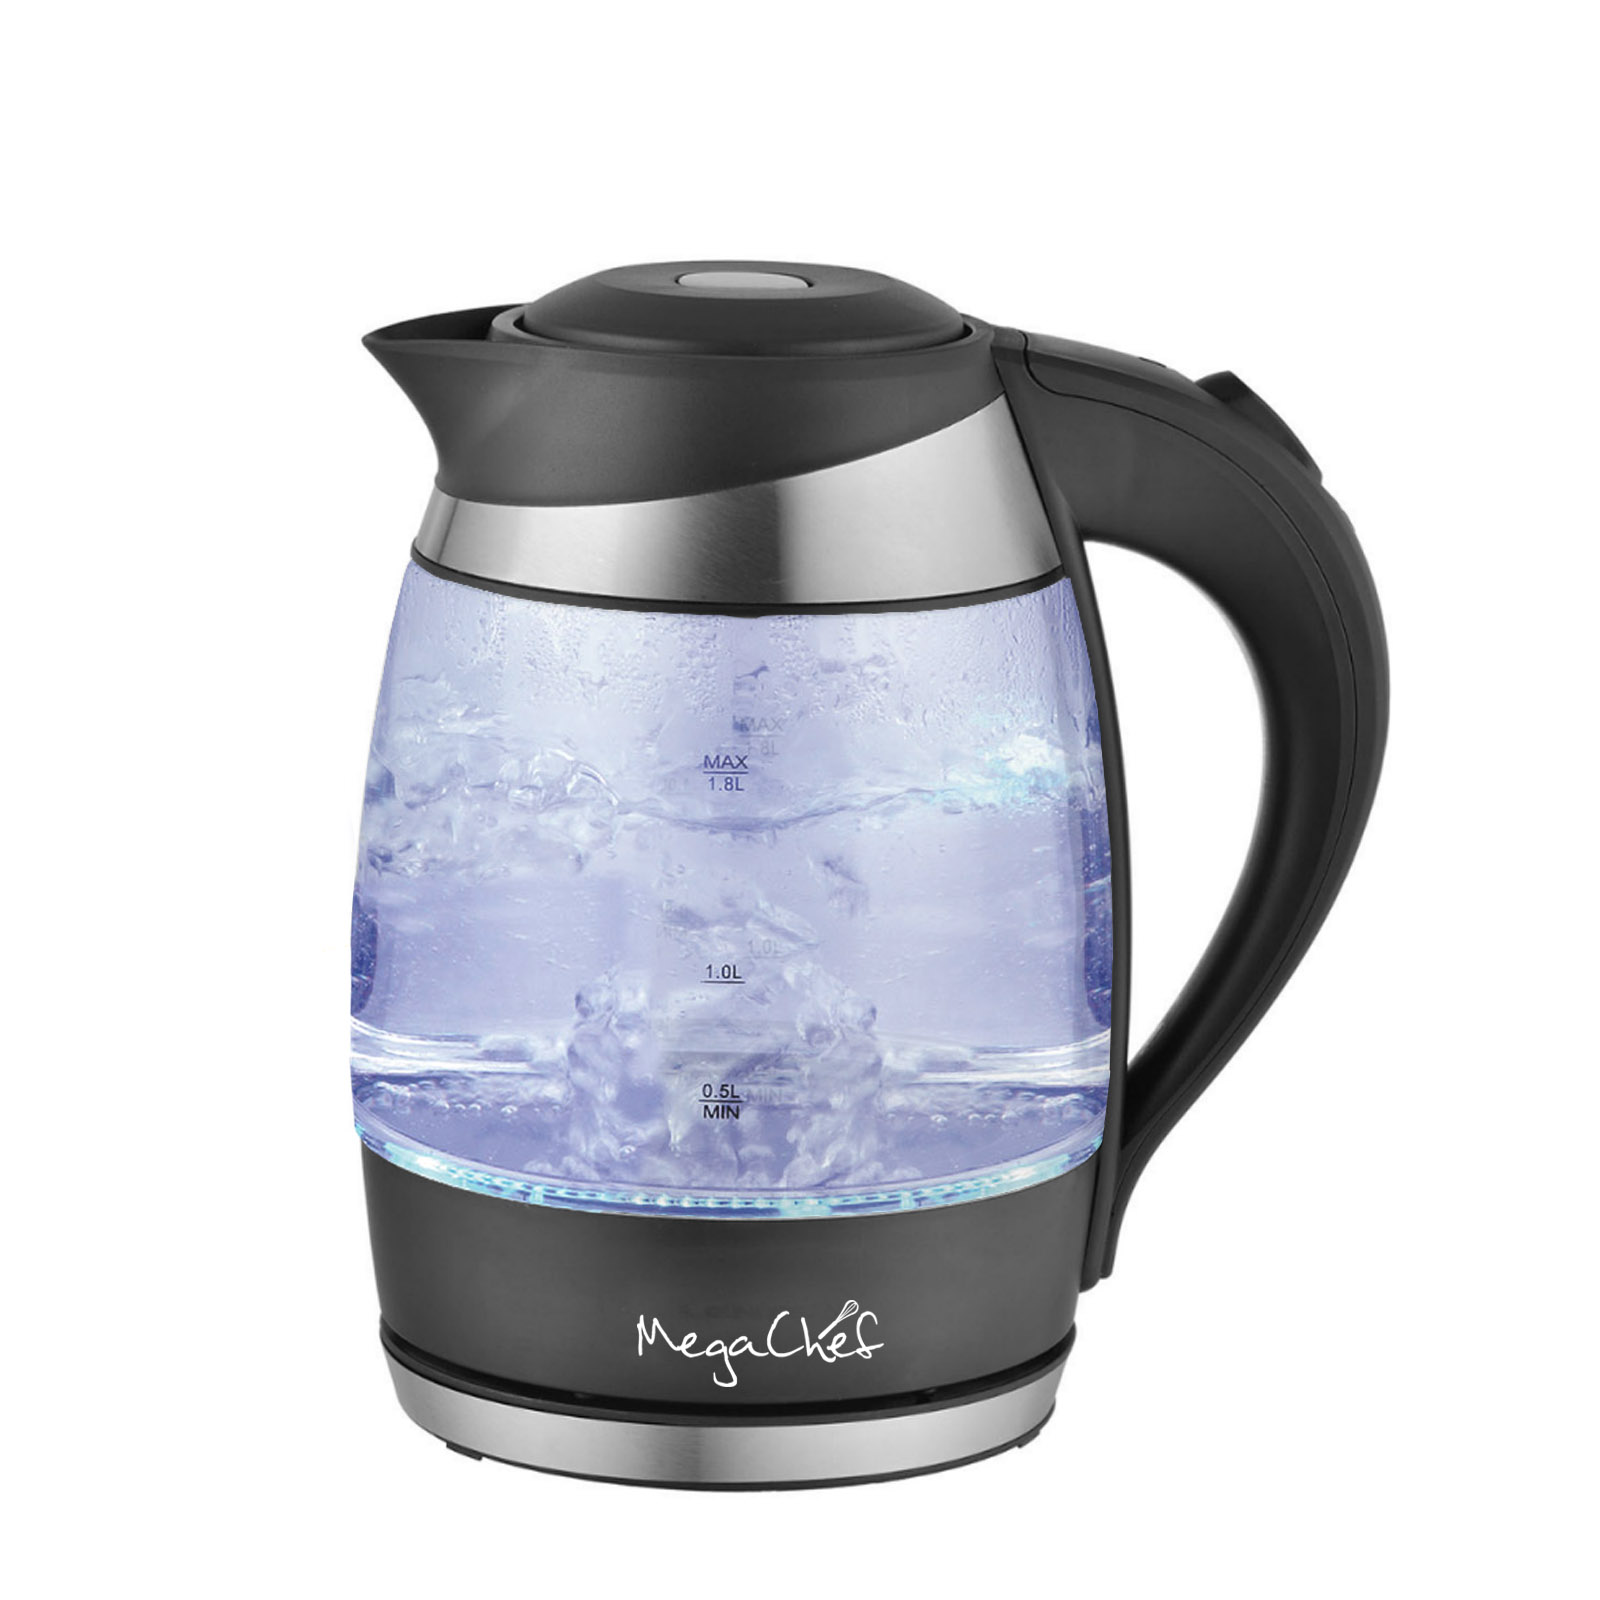 MegaChef 1.8Lt. Glass and Stainless Steel Electric Tea Kettle